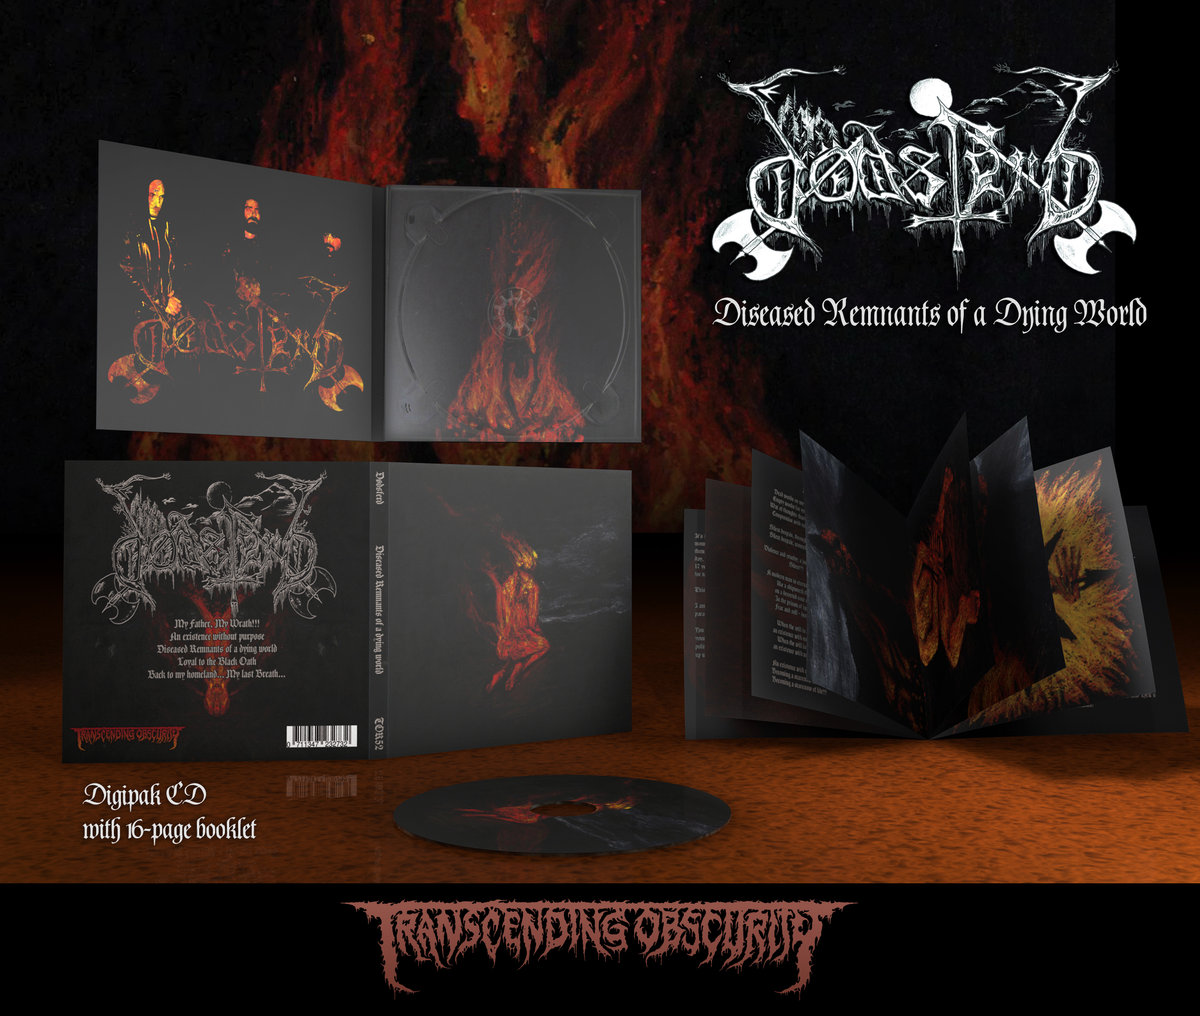 DØDSFERD (Greece) - 'Diseased Remnants Of A Dying World' Matt Varnish Digipak with 12-Page Booklet